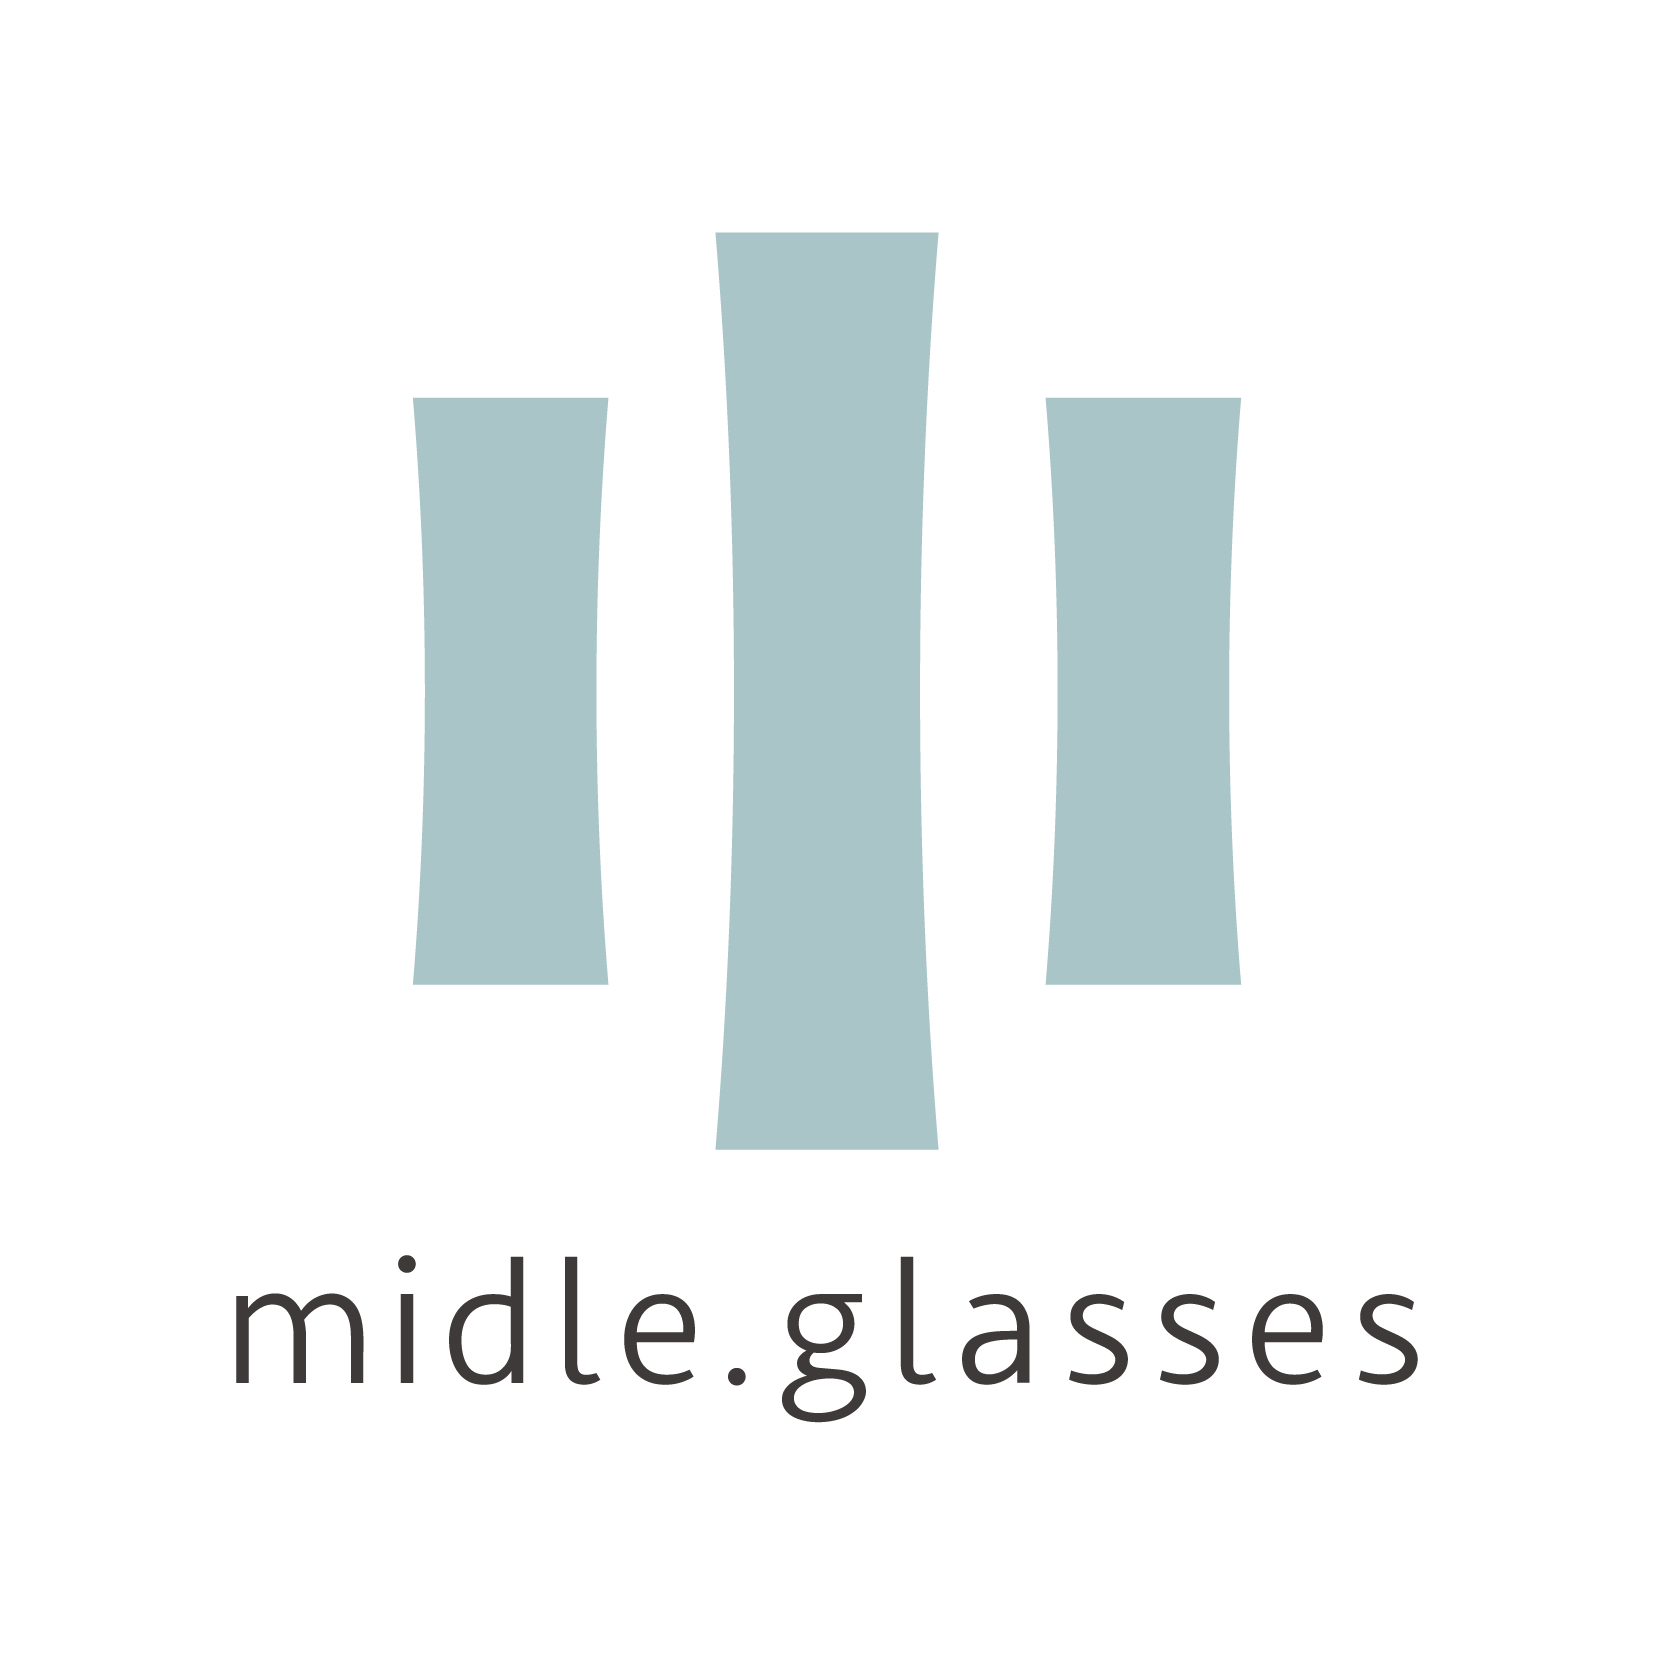 midle.glasses